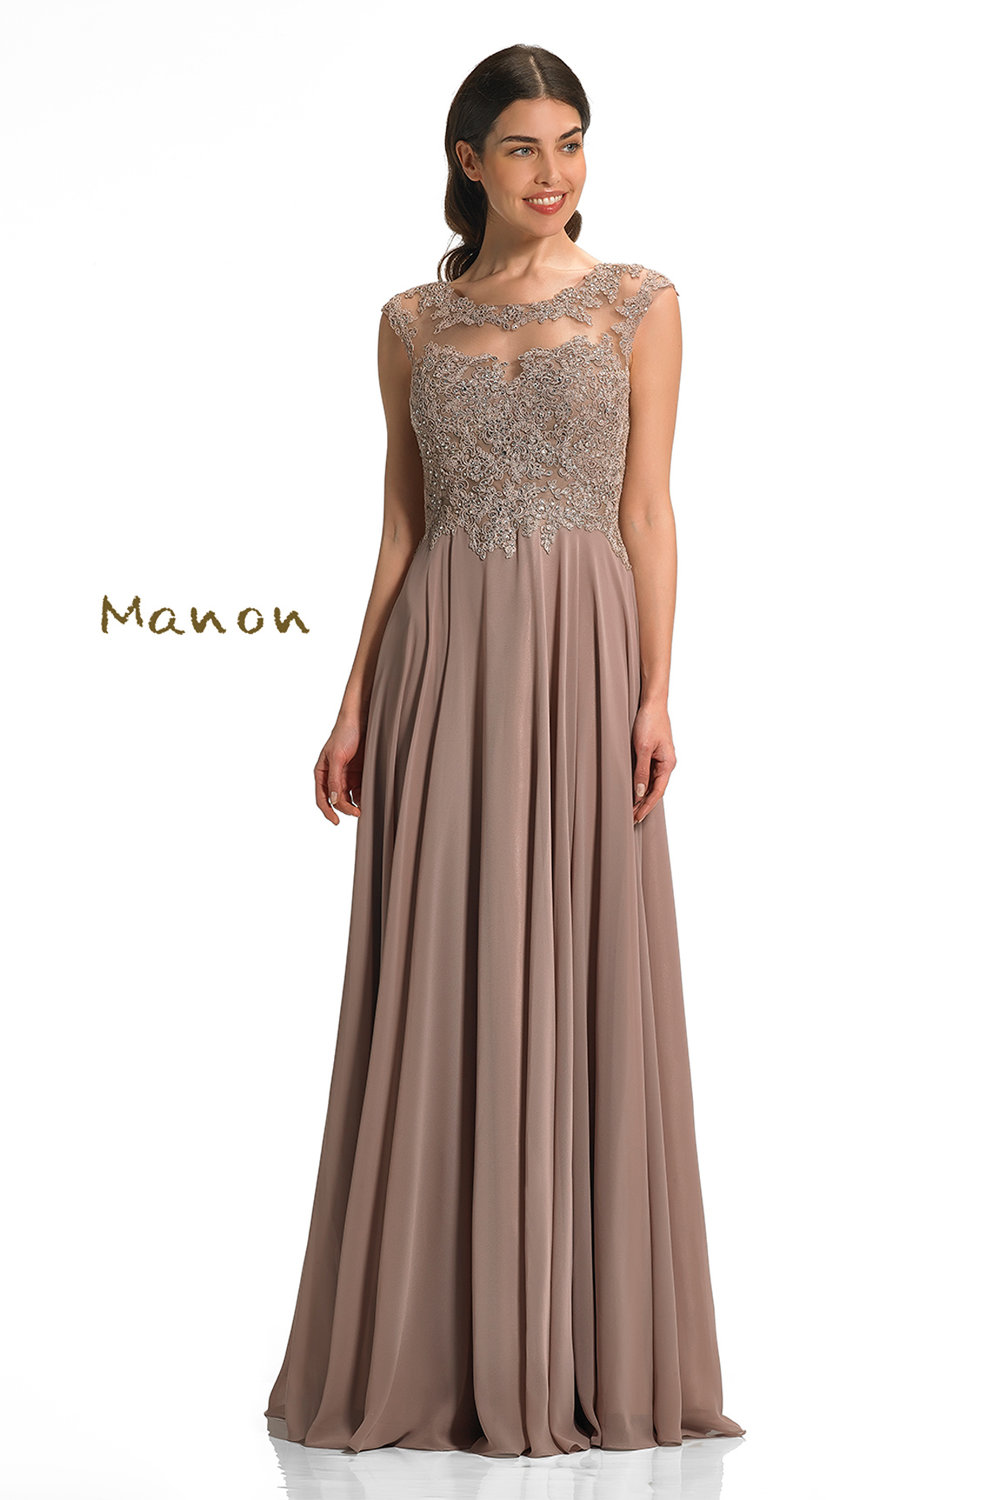 Prom Dresses & Occasion Wear — Cathedral Belles of Worcester